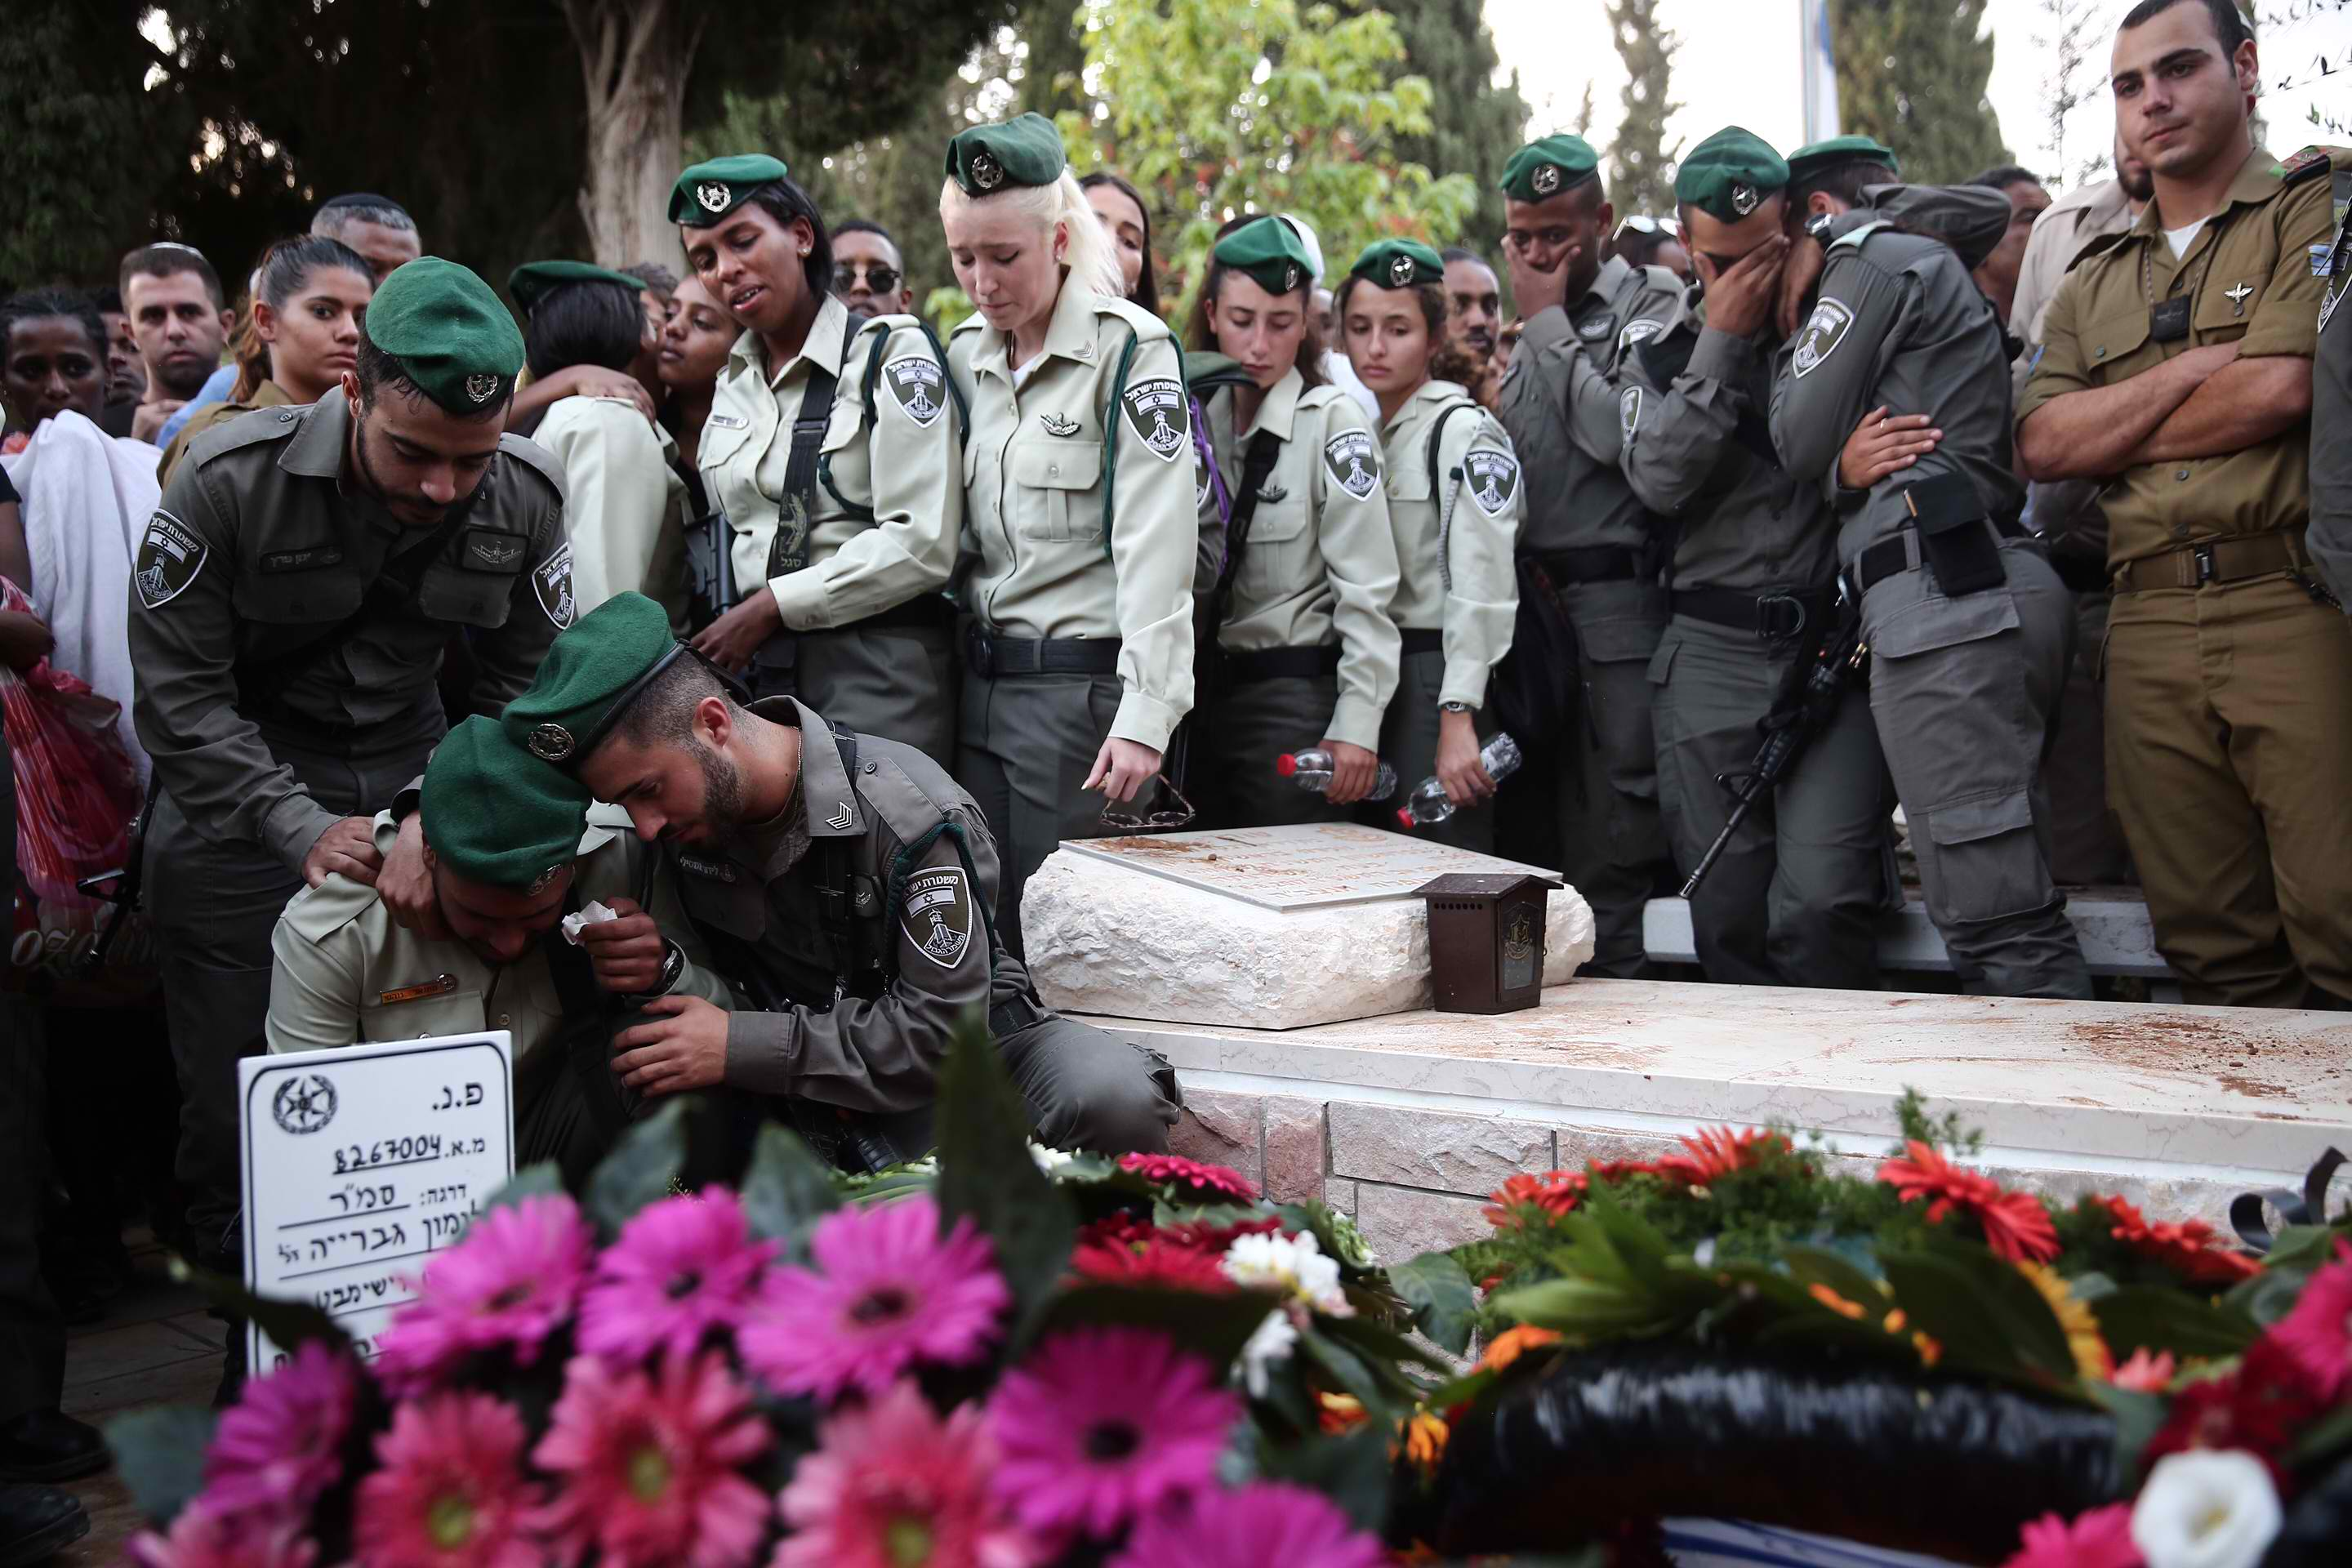 Hailed as heroes, victims of Har Adar terror attack buried | The